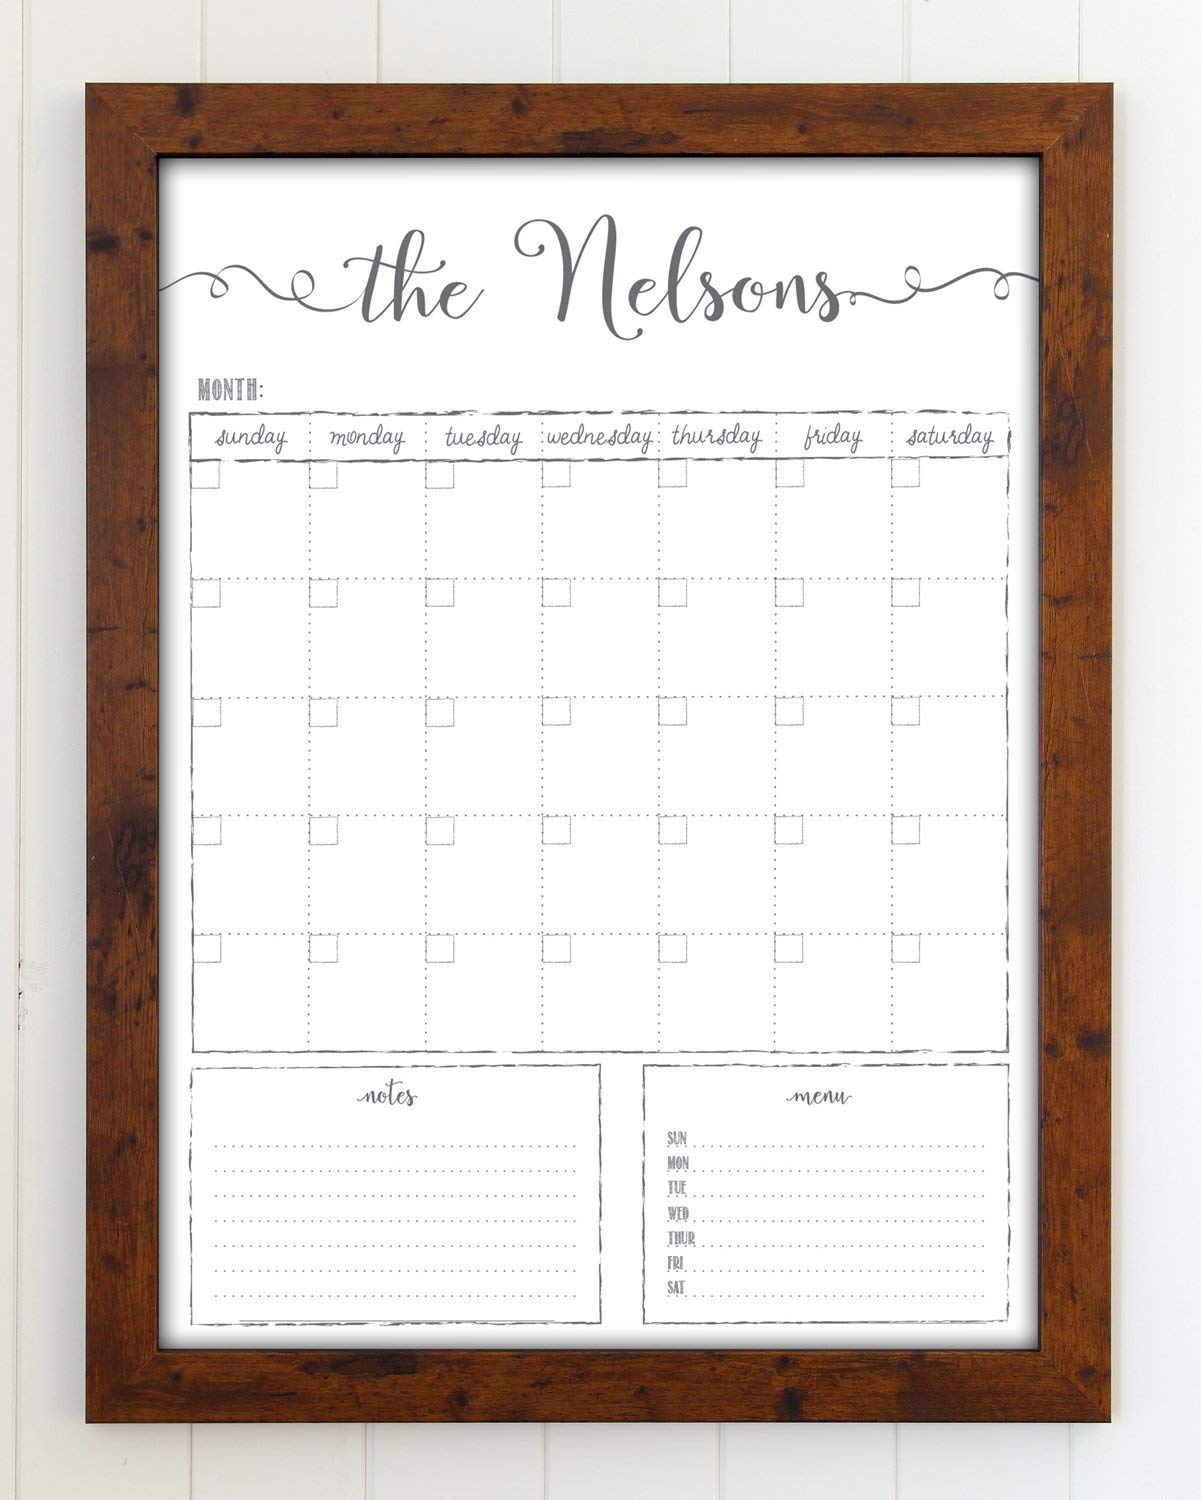 Dry Erase Calendar, Custom Whiteboard Framed Calendar, 18x24 Wall Calendar, Chalkboard Calendar, Family name Calendar, reusable calendar organizer, Command Center, Dry Erase Board